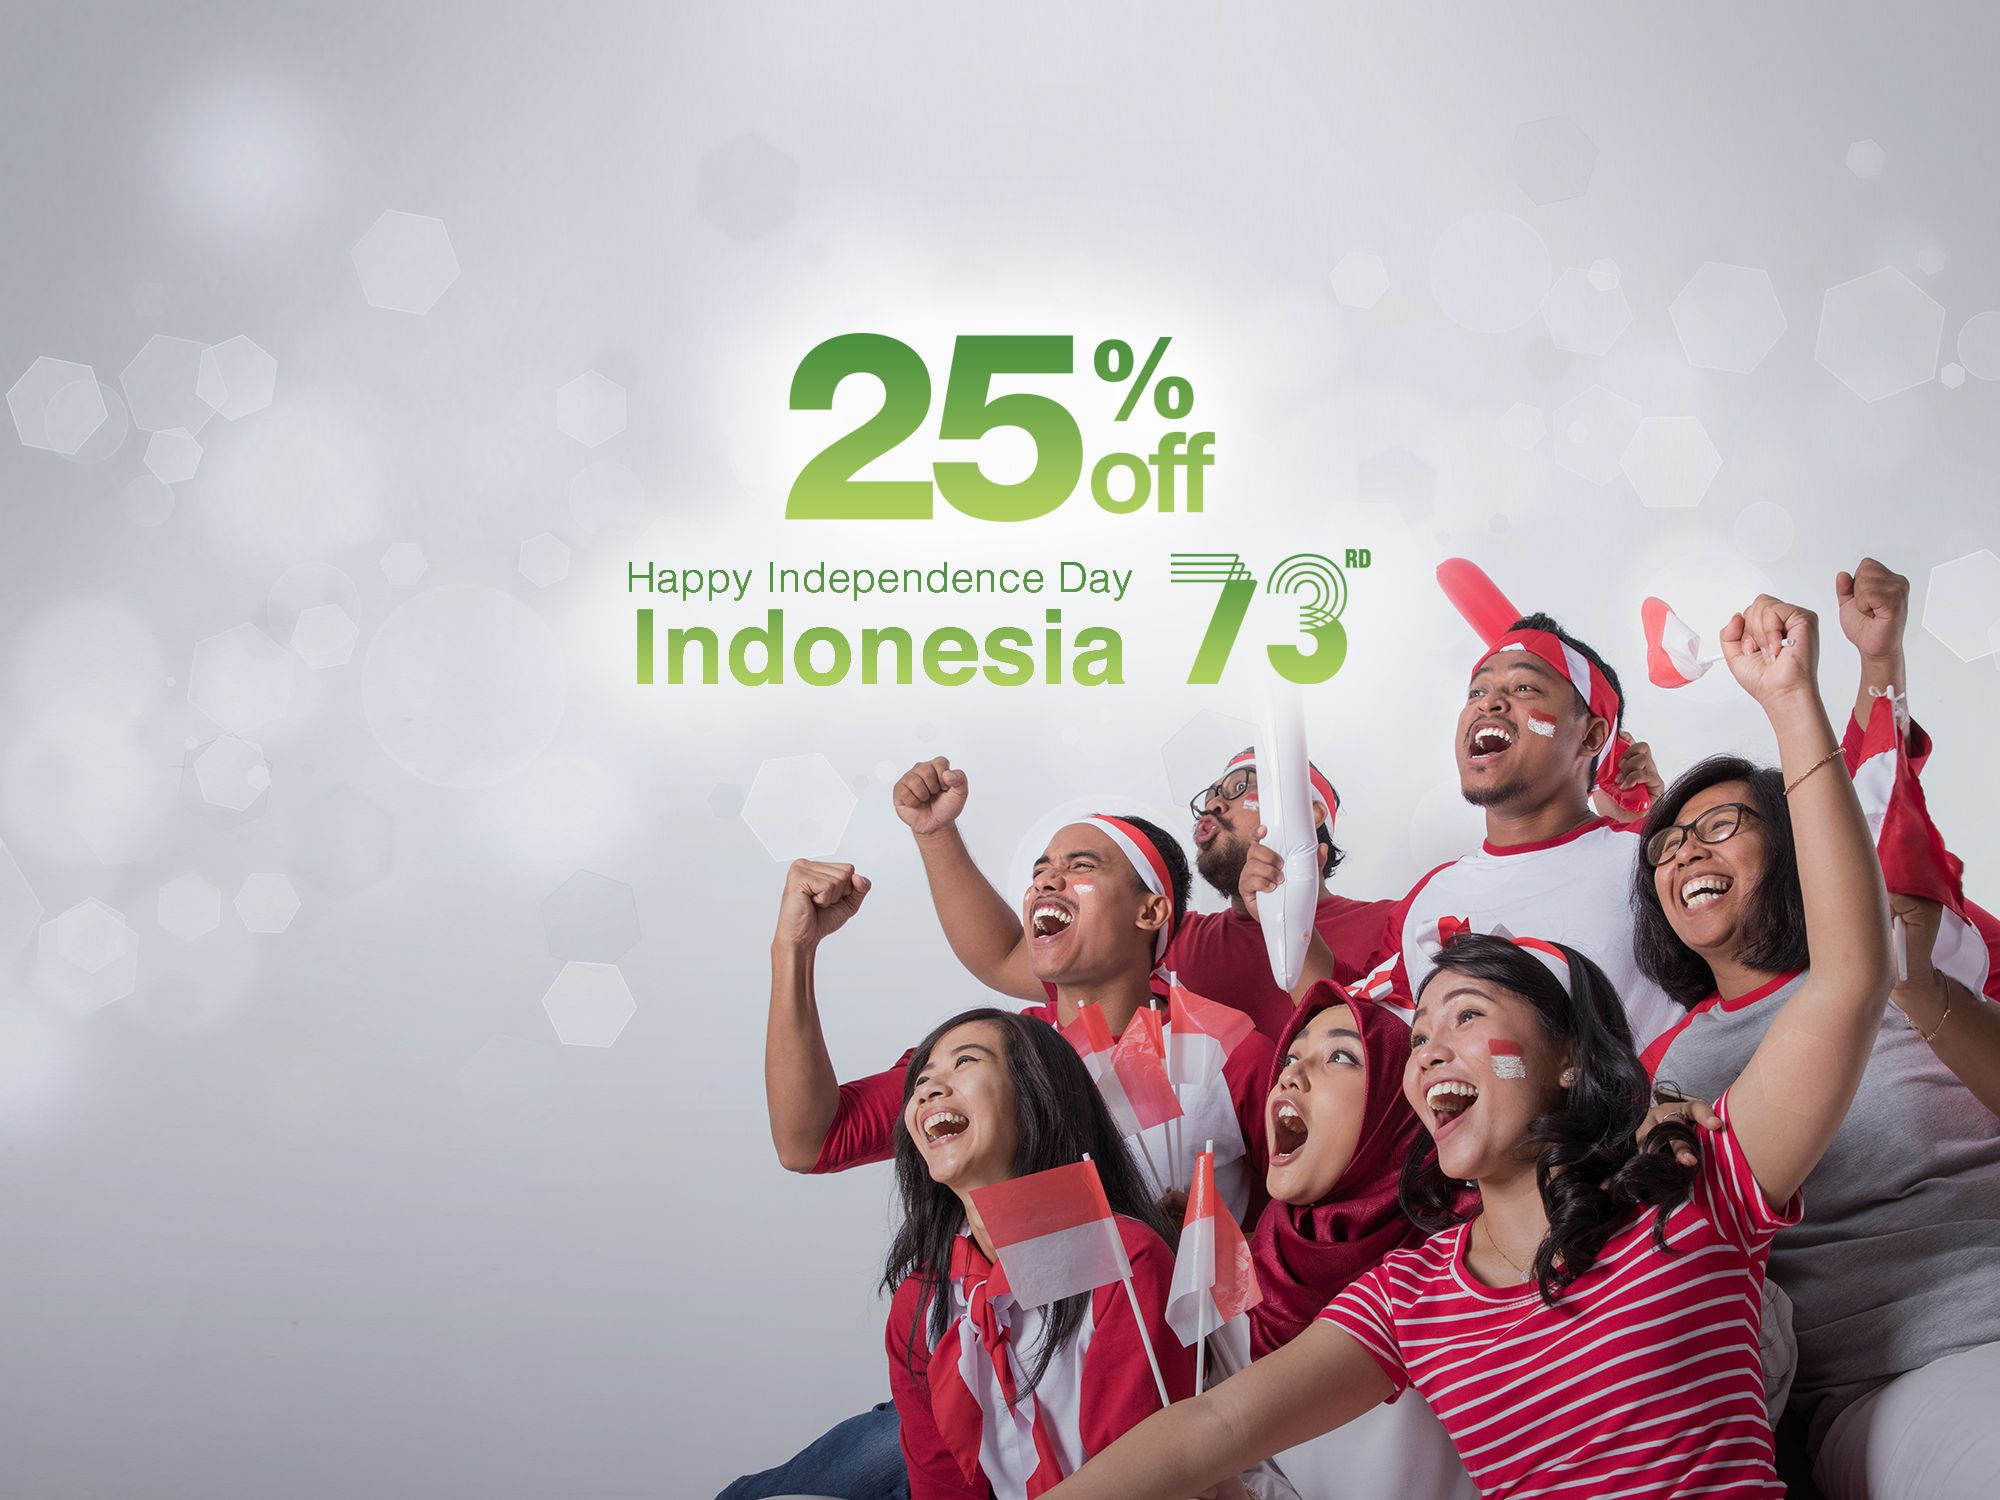 Celebrate Independence Day of Indonesia with Us and Enjoy 25% OFF!